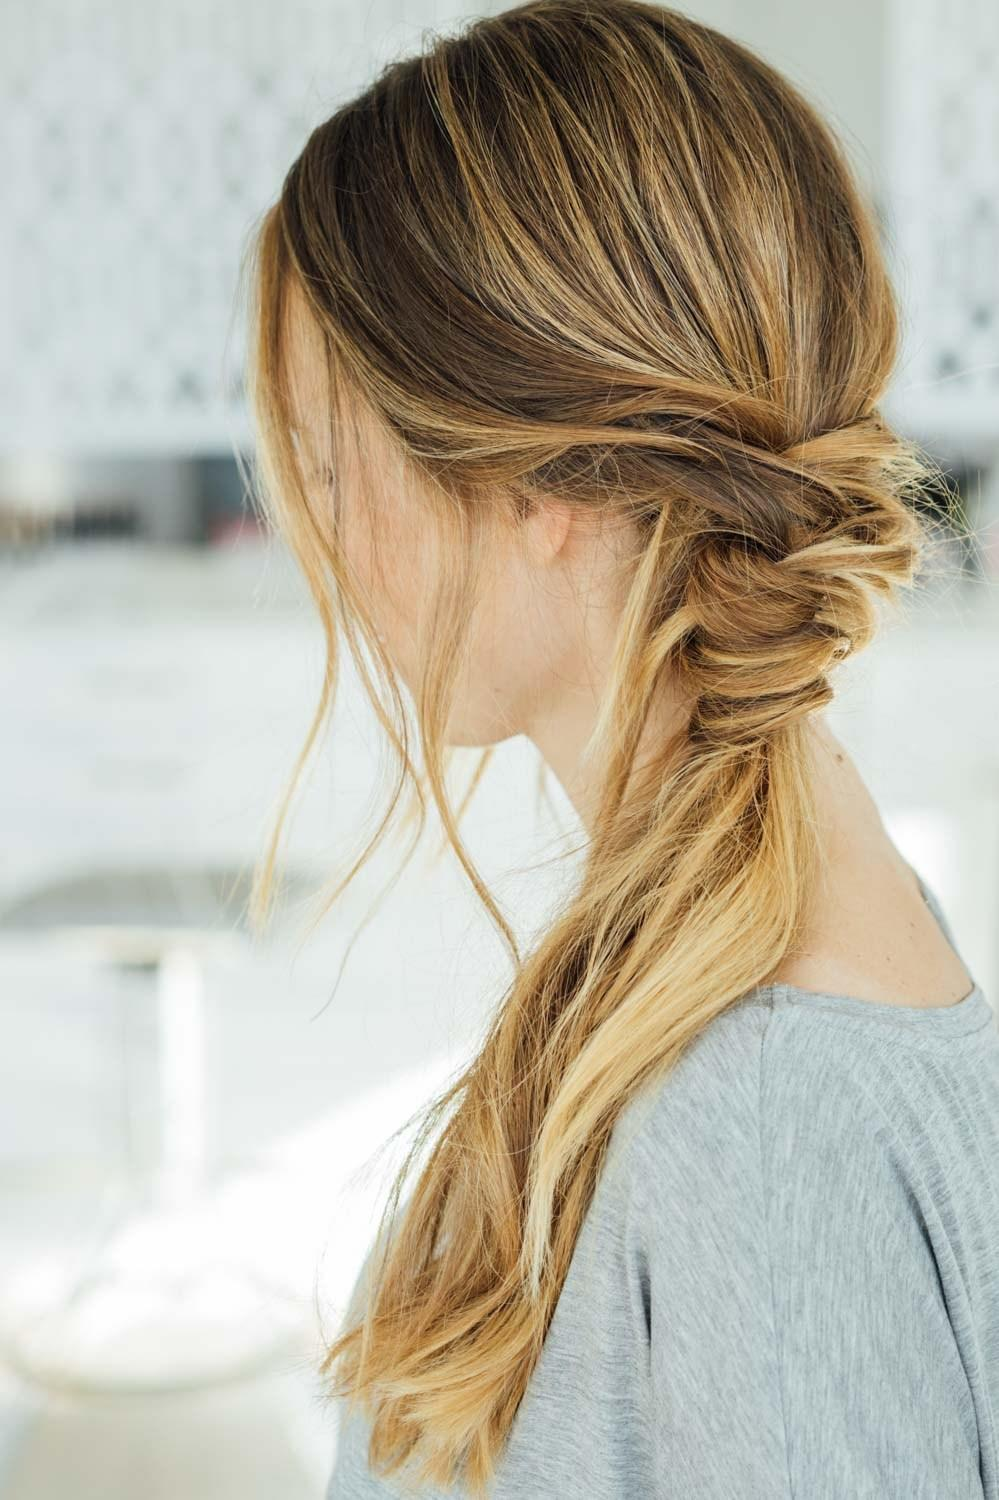 The Best 16 Easy Hairstyles For Hot Summer Days The Everygirl Pictures